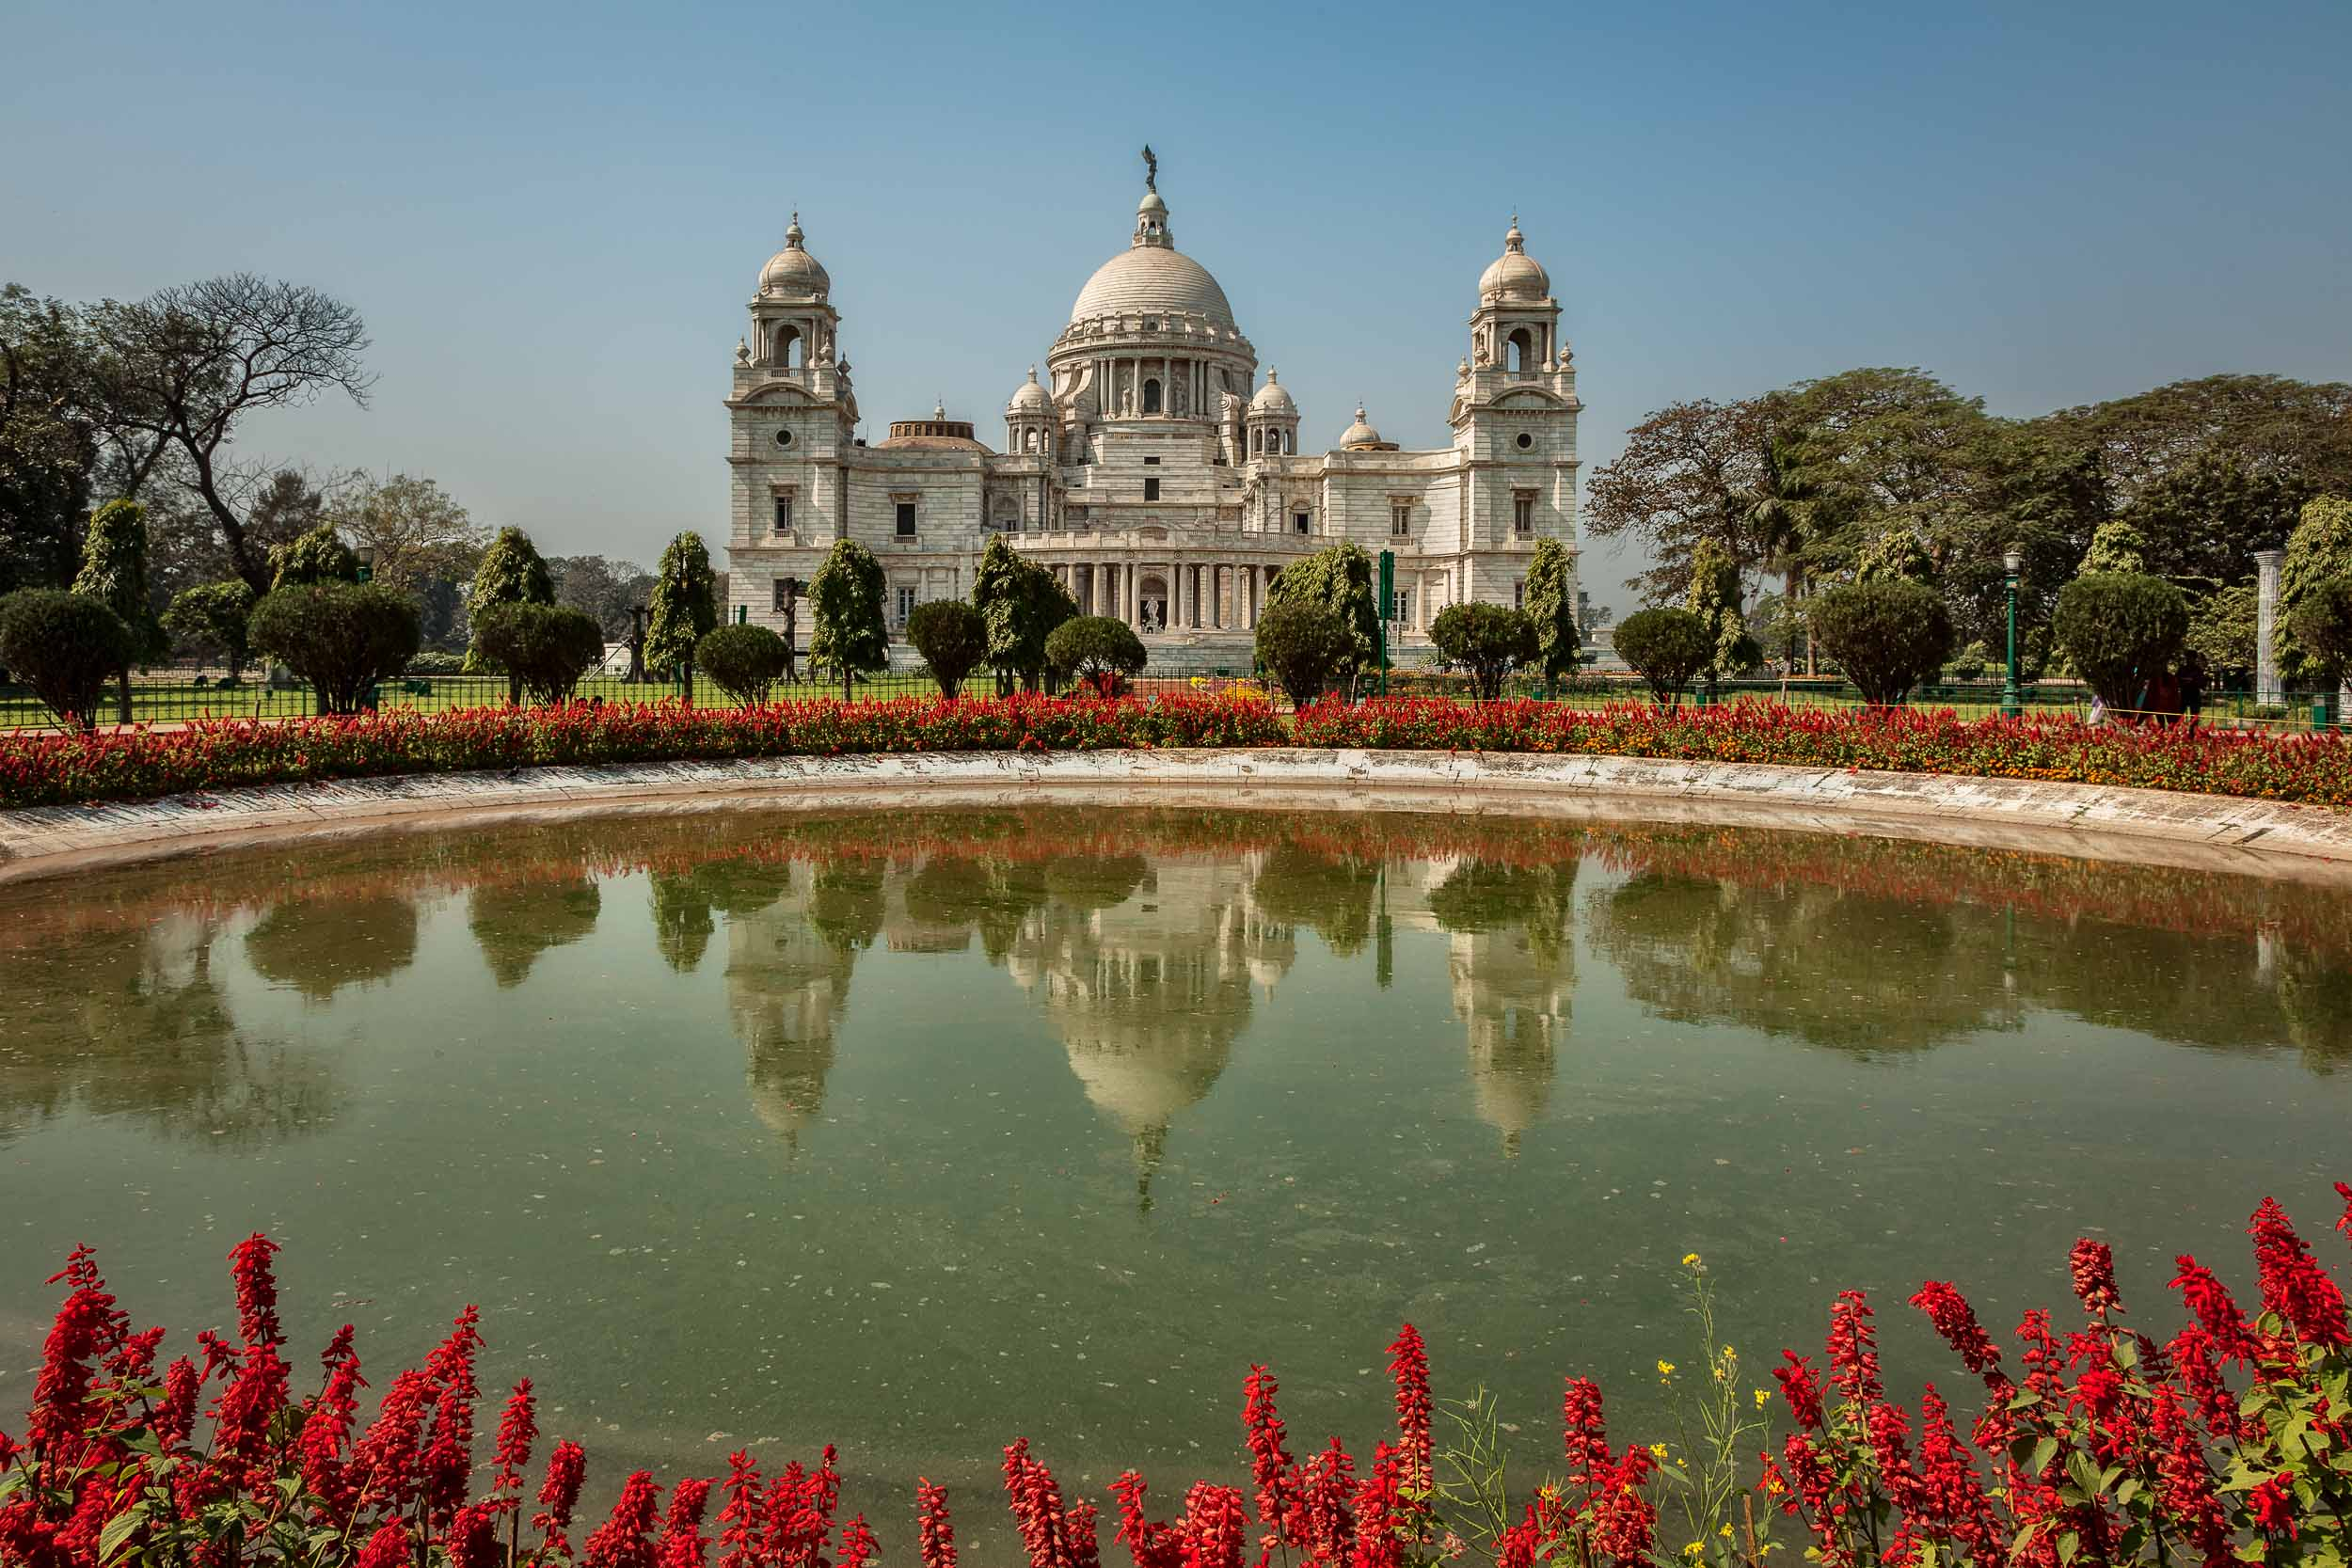 Gardens and pond at the Victoria Memorial in Kolkata, India.